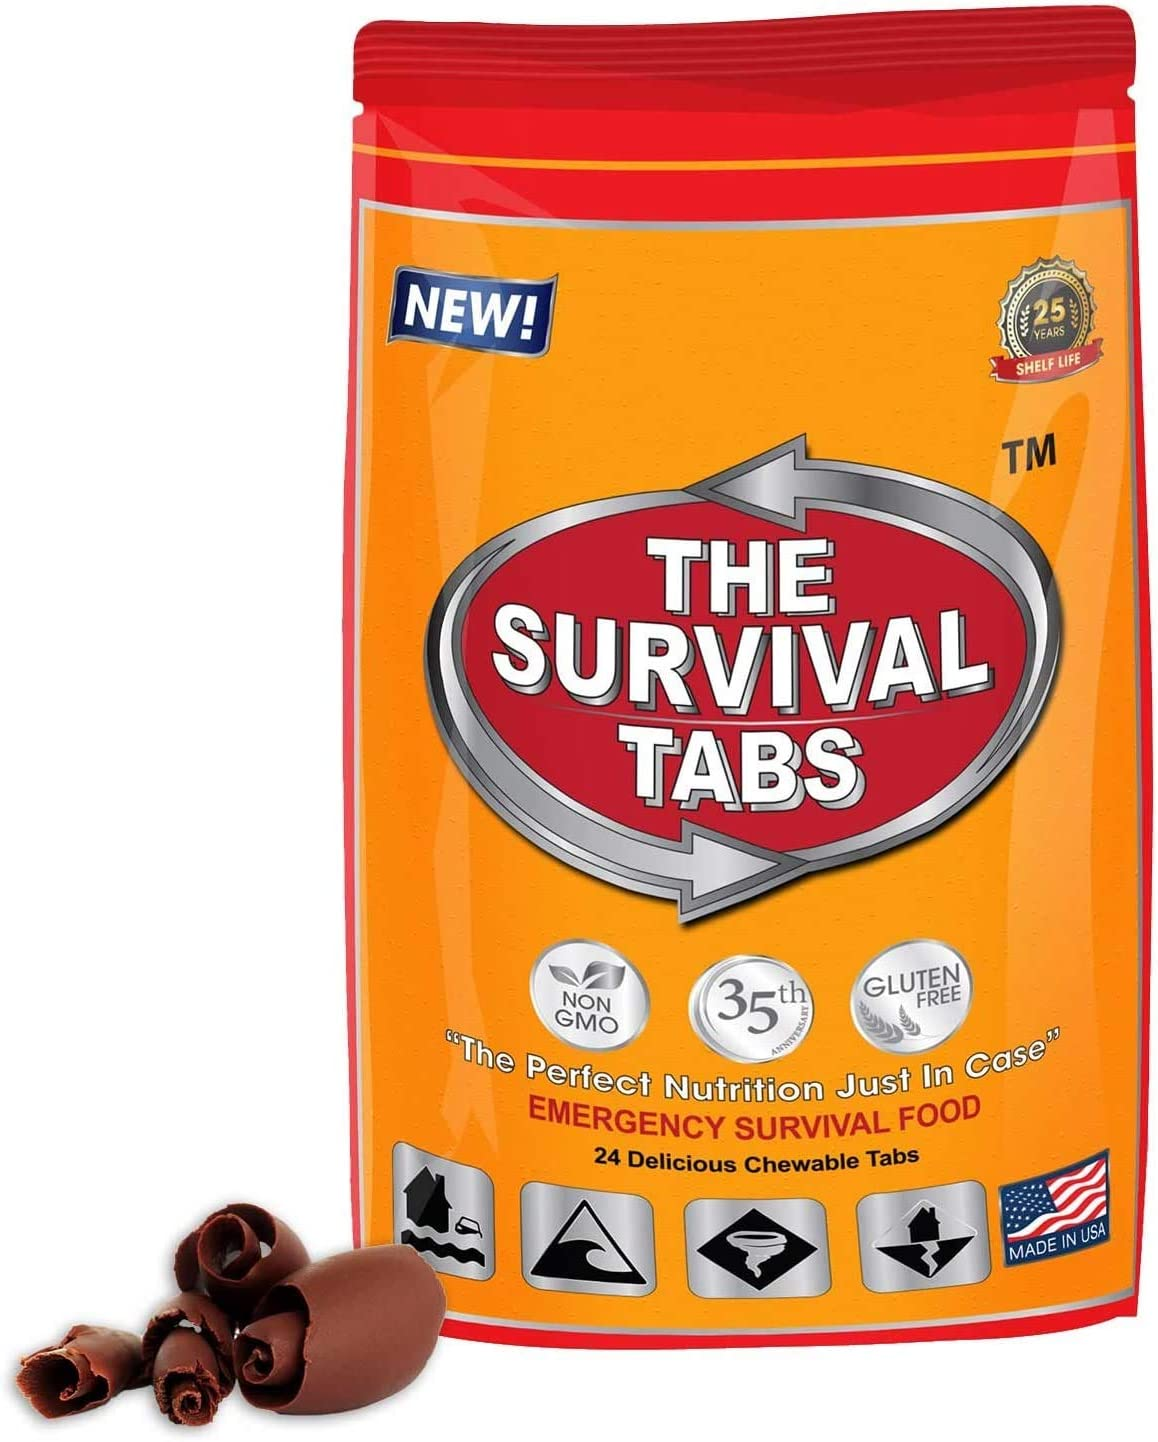 Survival Food for Auto Racing Survival Tabs 2-Day Food Supply 24 Tabs Emergency Food Ration Survival Gluten Free and Non-GMO 25 Years Shelf Life Long Term Food Storage - Chocolate Flavor